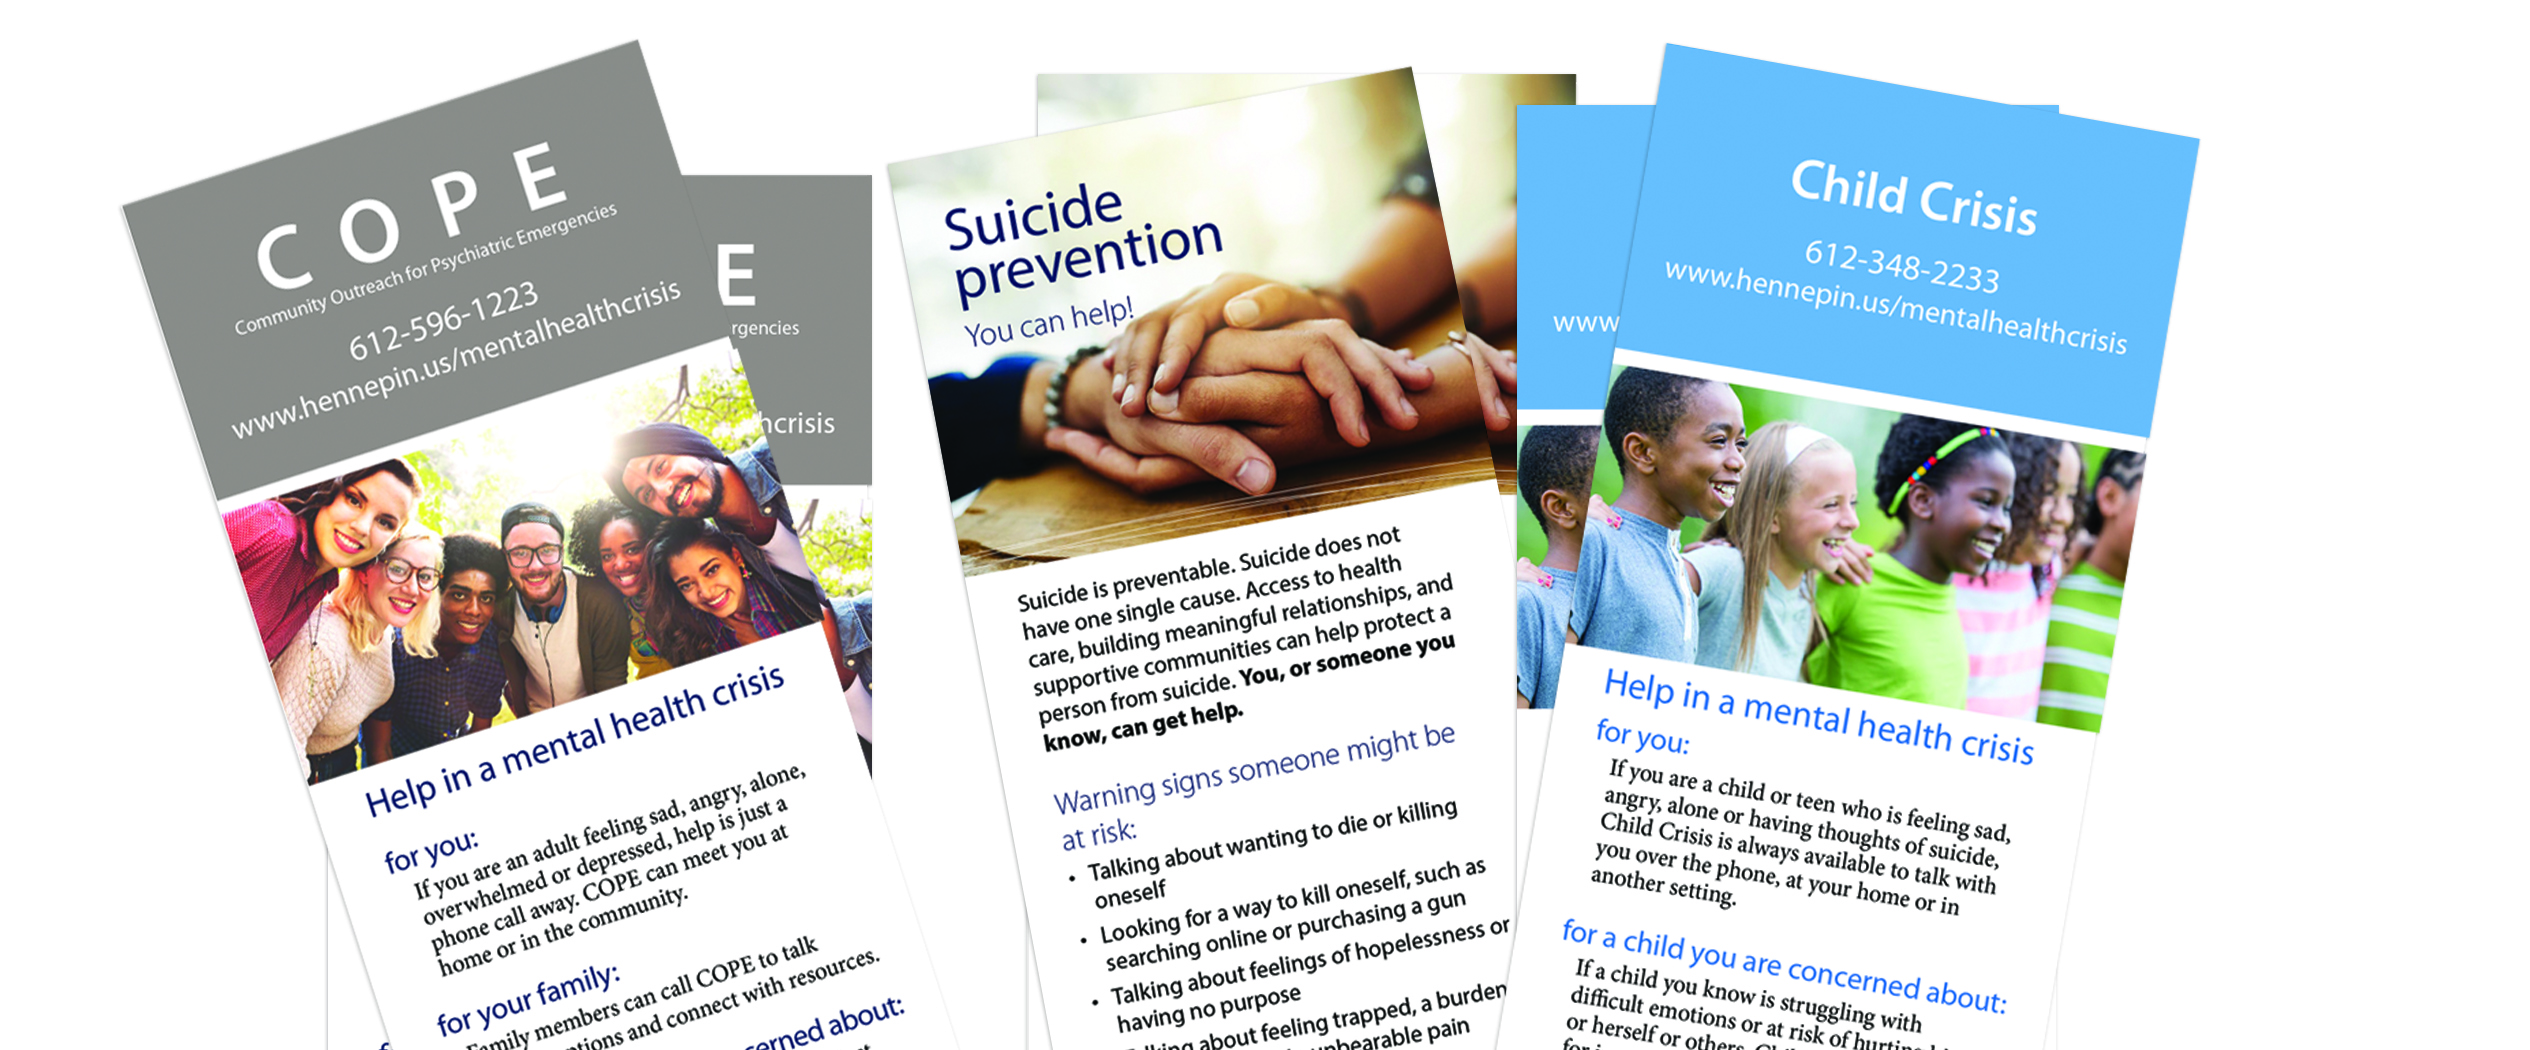 COPE, Child Crisis, and suicide prevention brochures sitting on a table